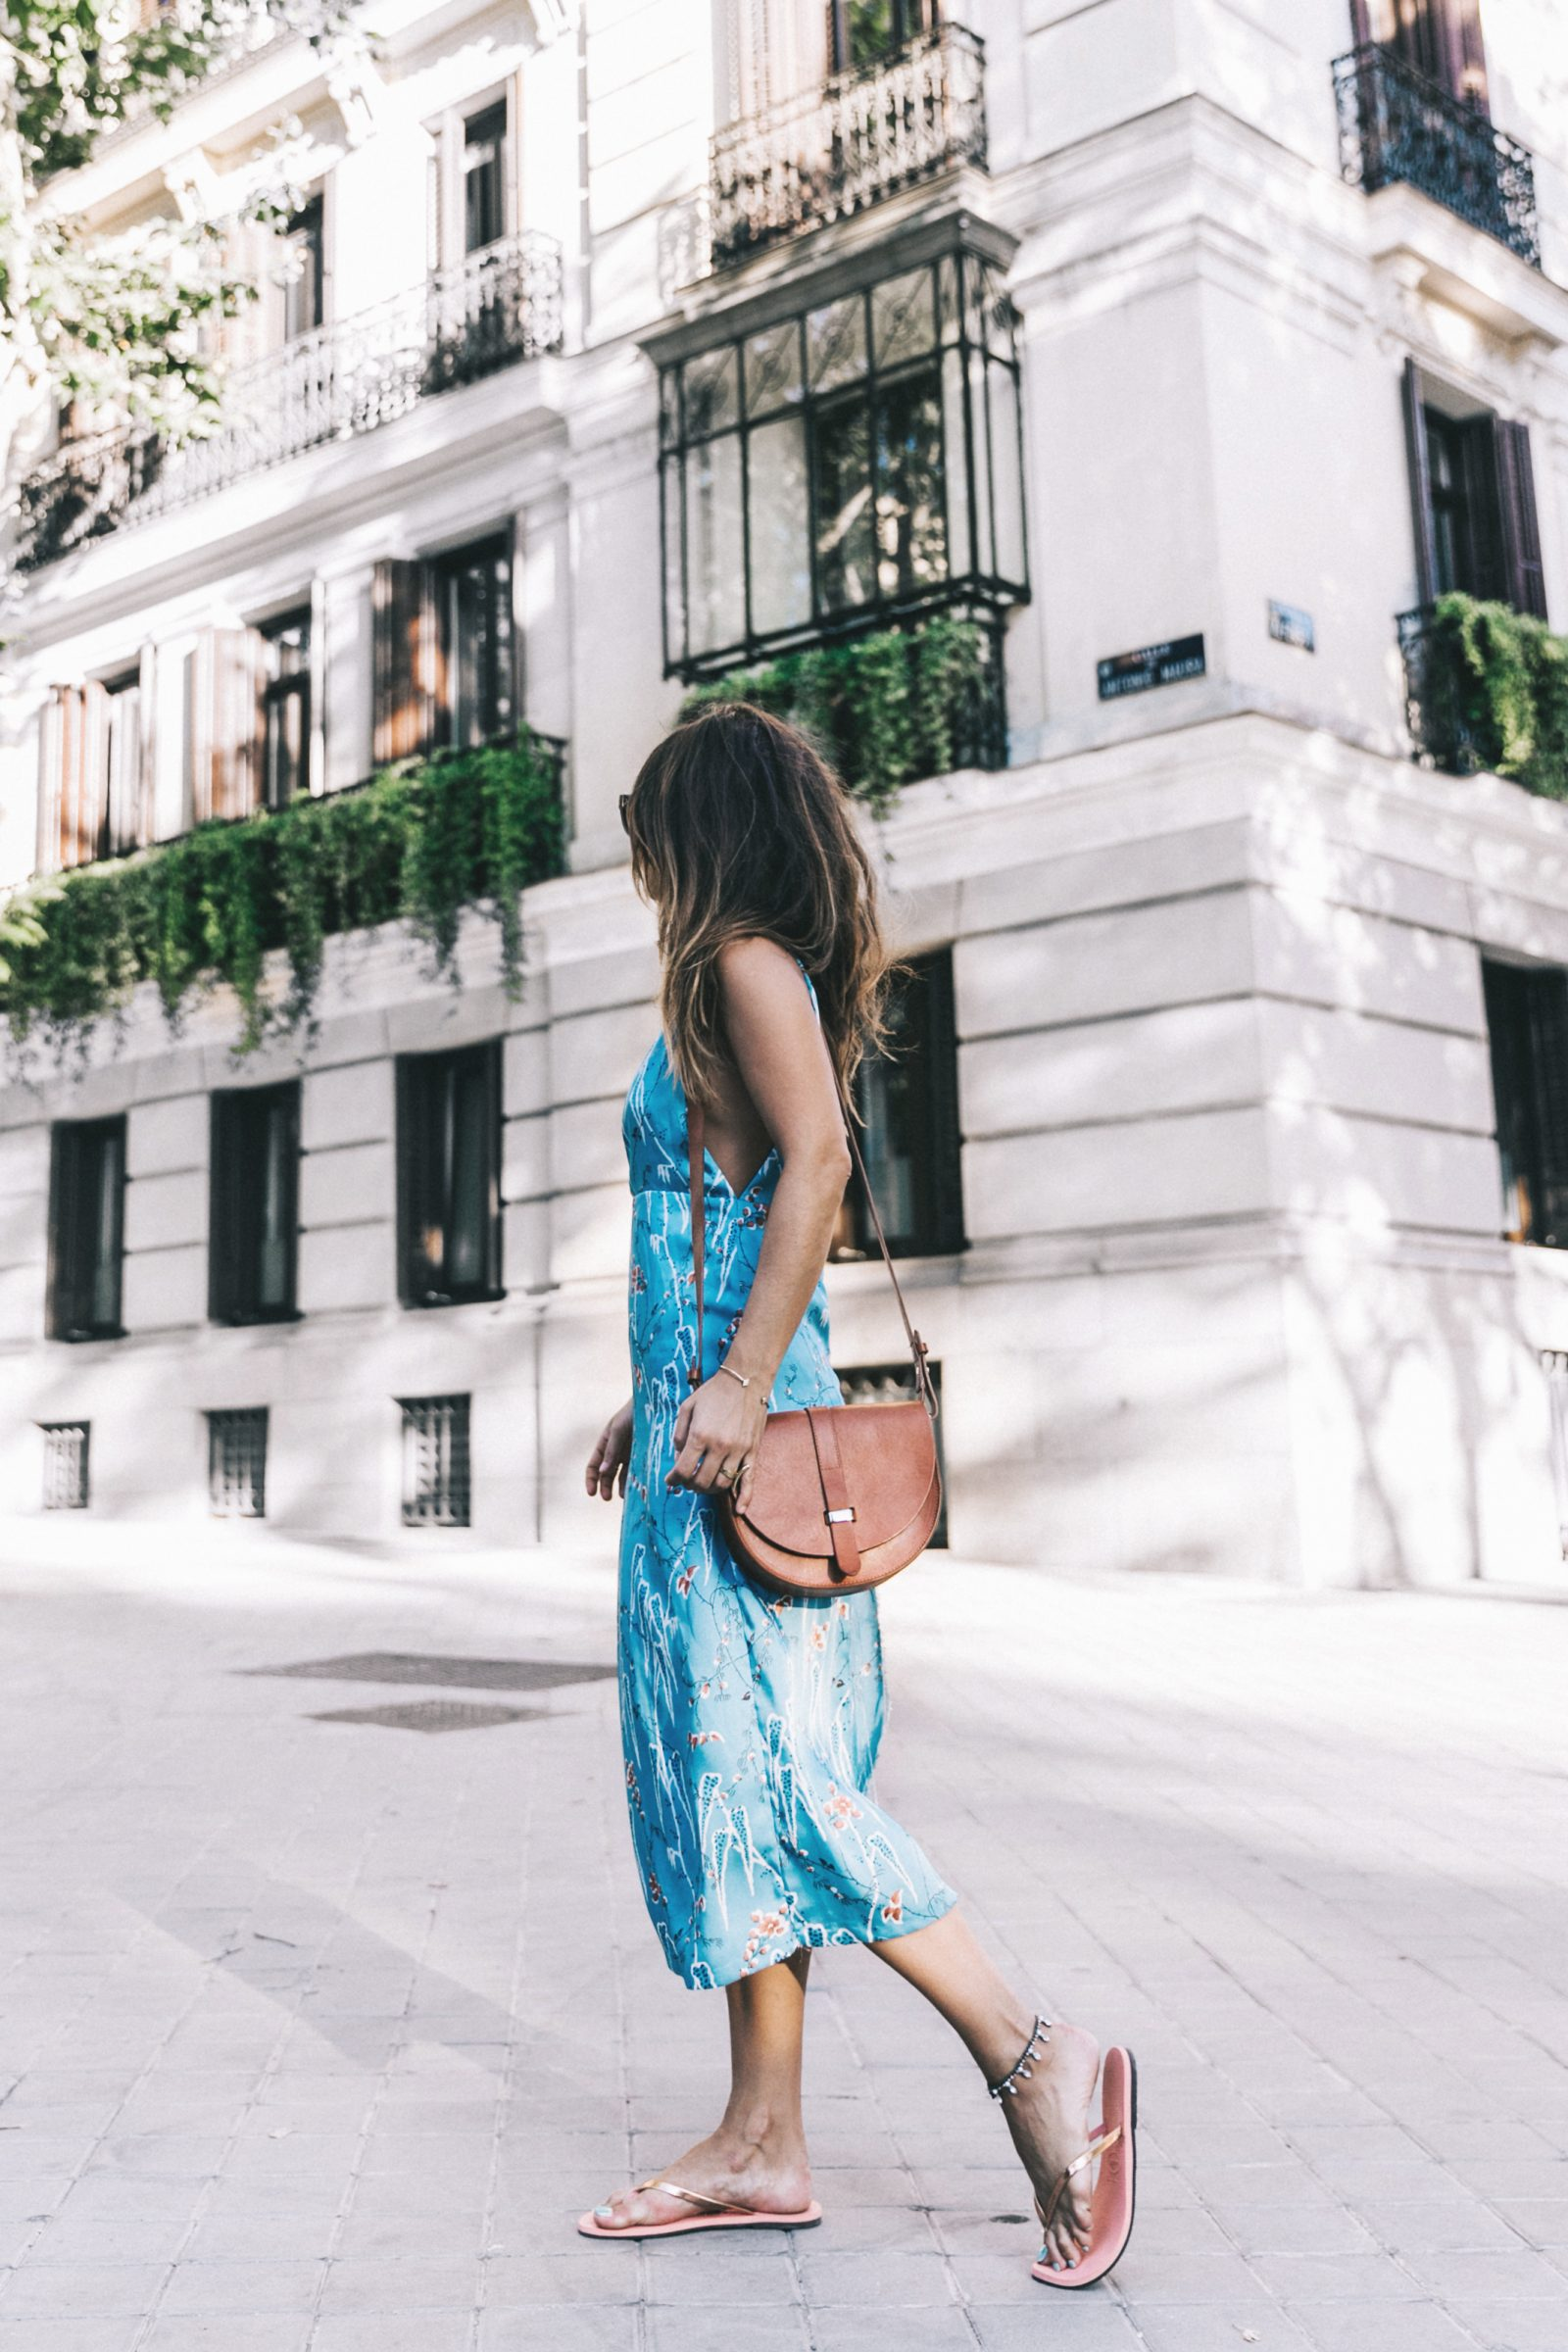 Outfit-Floral_Dress-Havaianas_Sandals-Summer-Sezane_Bag-Street_Style-Celine_Sunglasses-Collage_Vintage-8